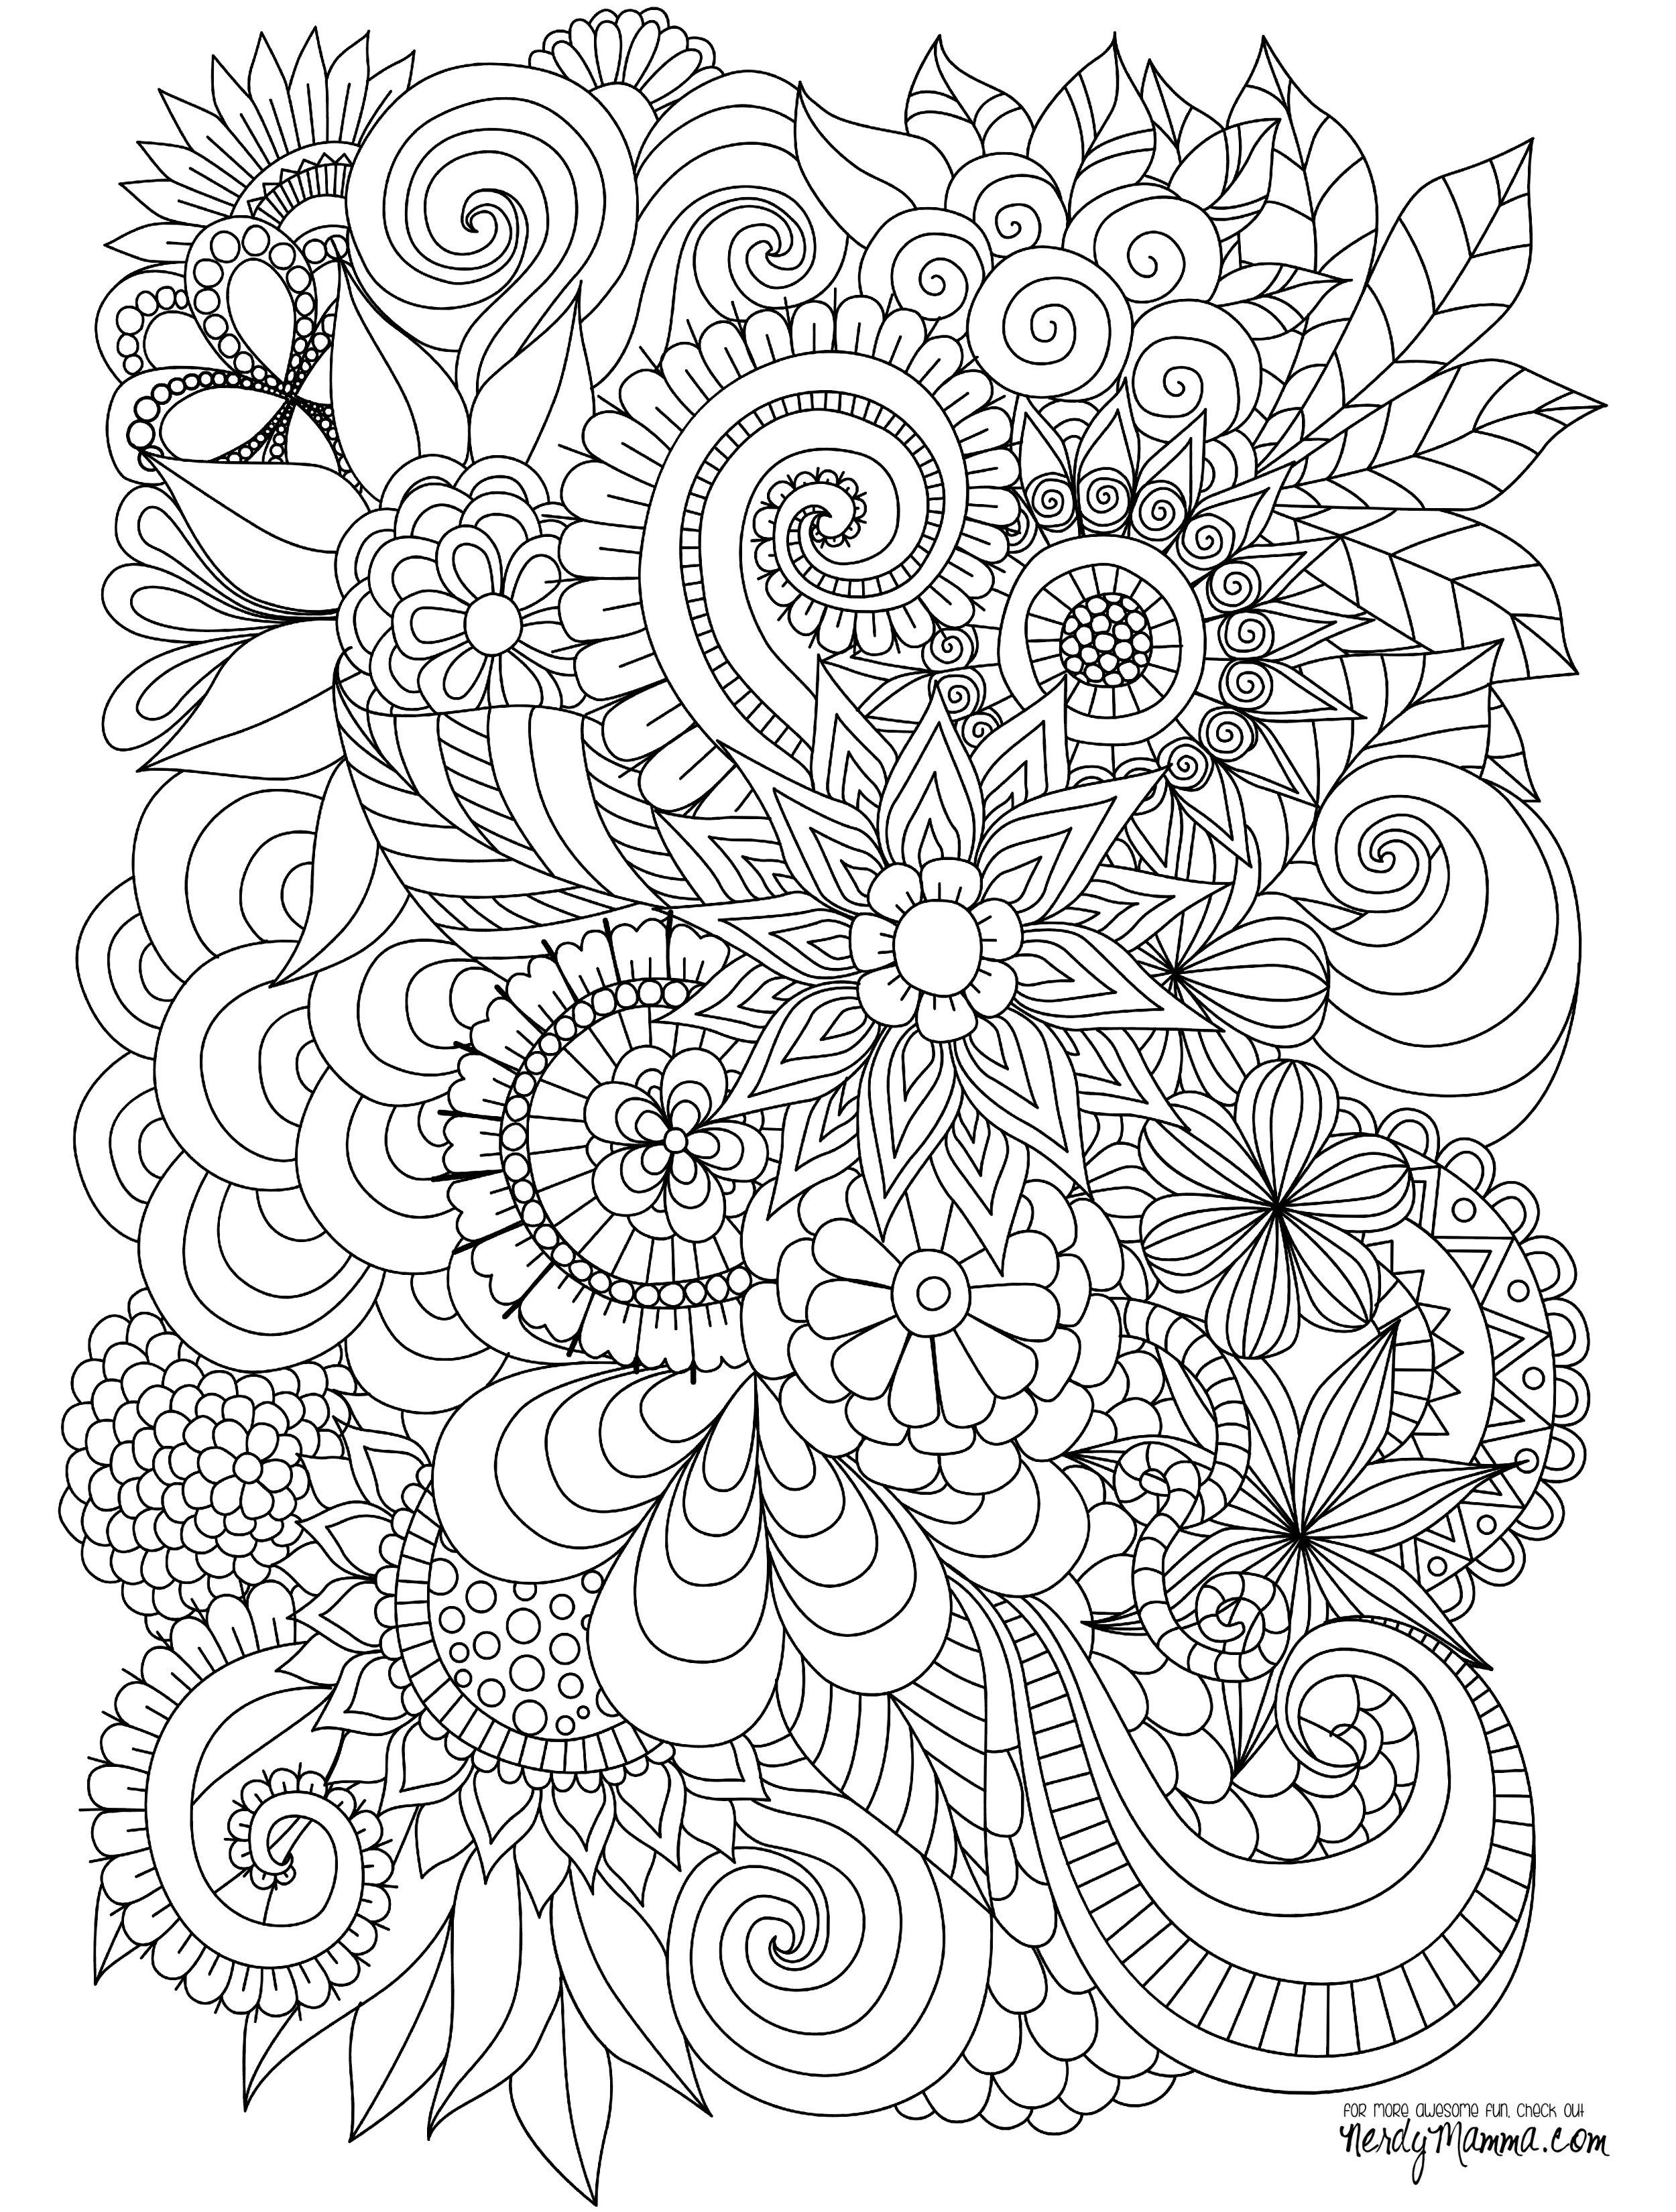 Easy Paisley Coloring Pages  to Print 1o - Free For Children